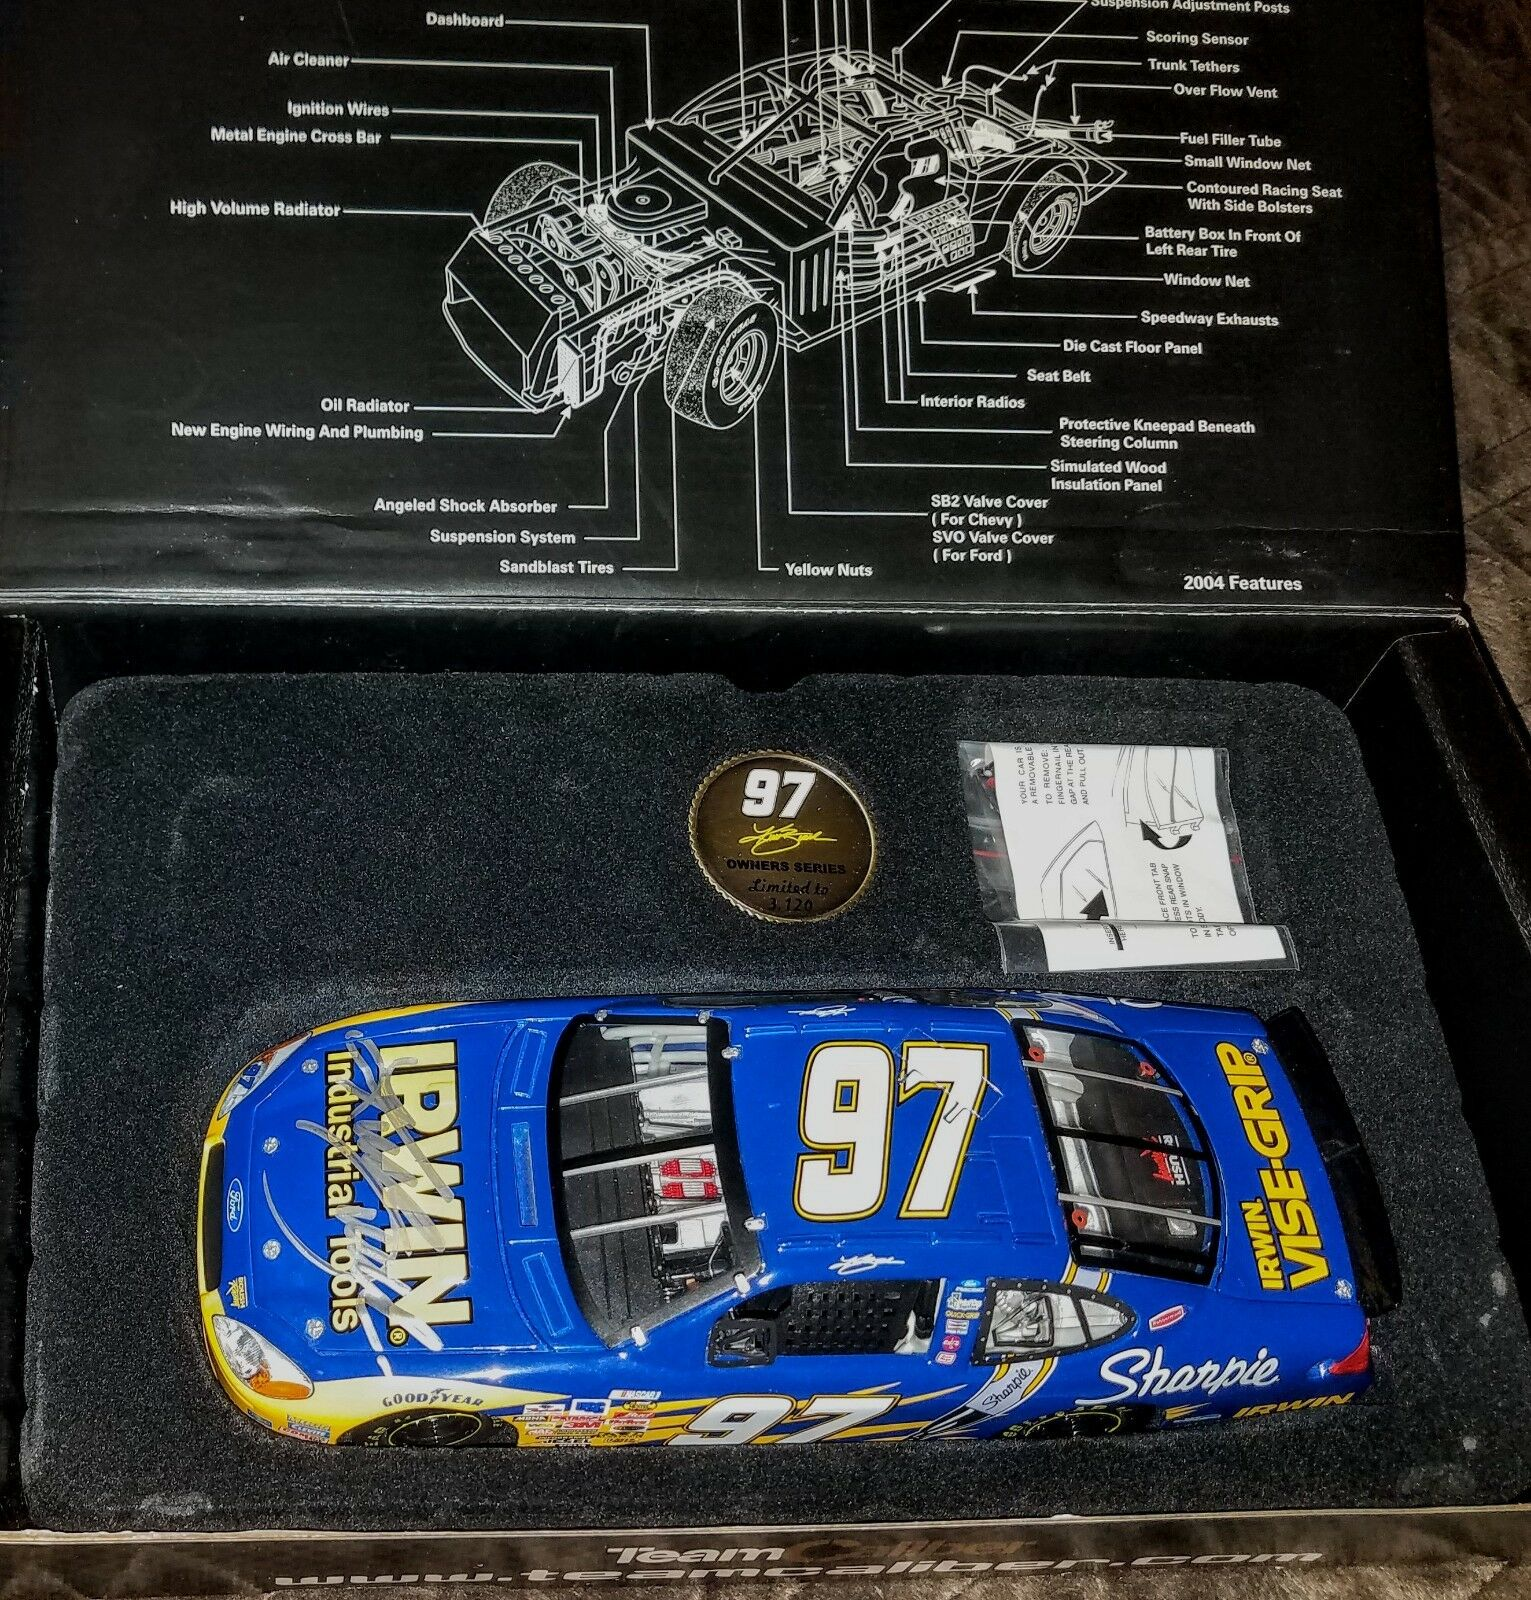 2005 SIGNED by Kurt Busch IRWIN TOOLS 1 24 Team Caliber Owners Diecast NASCAR